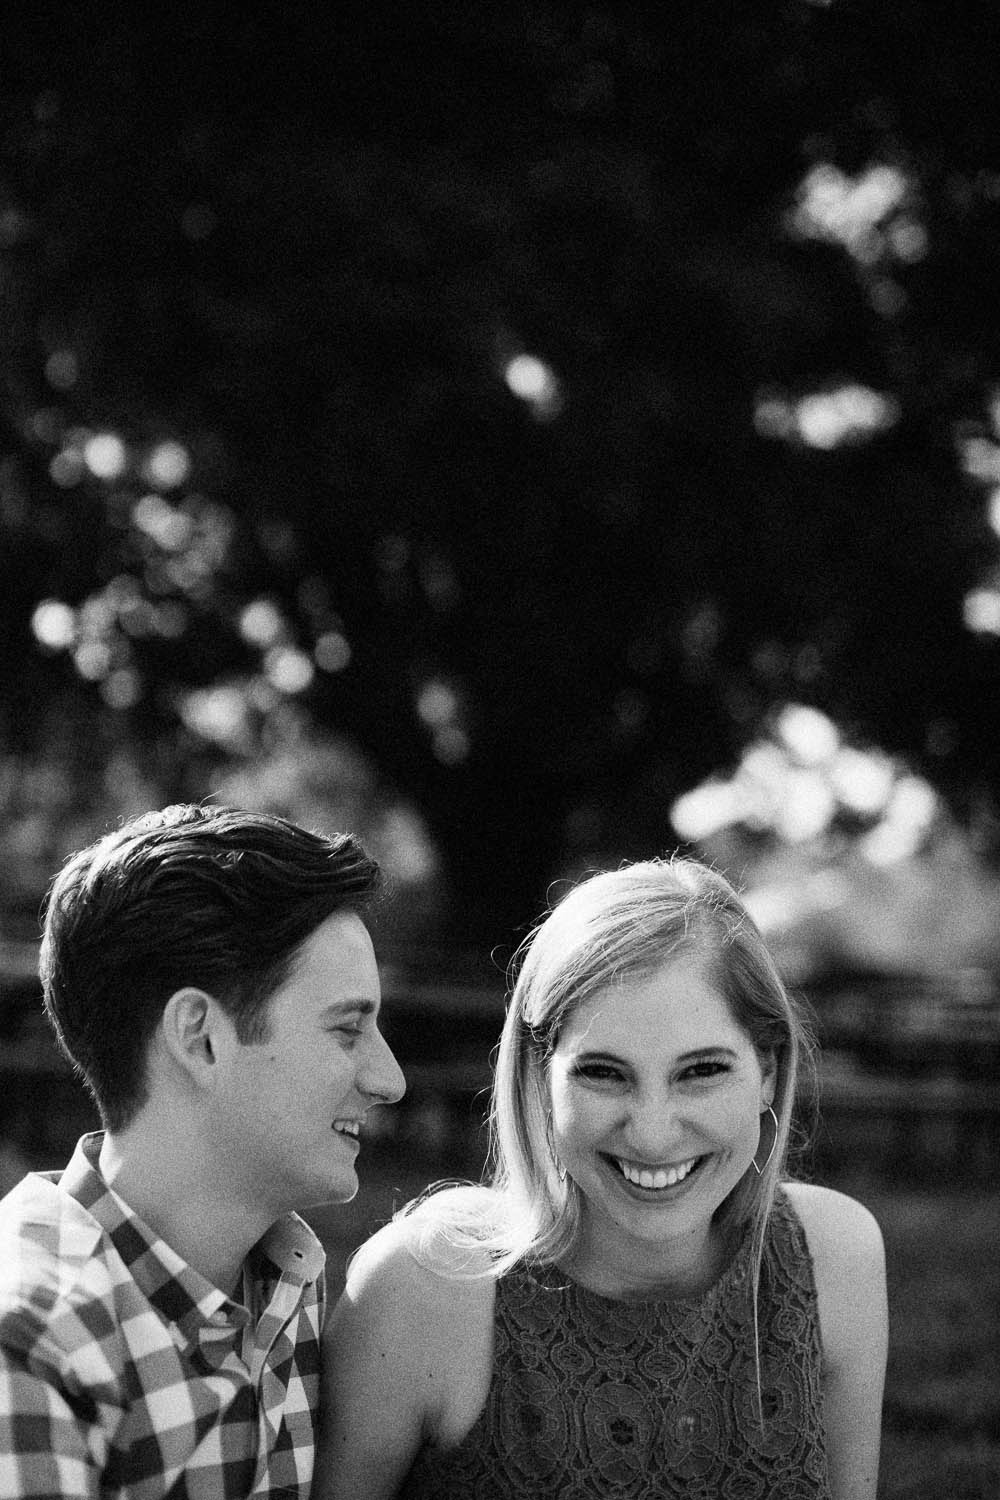 nashville zoo engagement session natural documentary day in the life photographer ©2016abigailbobophotography-10.jpg